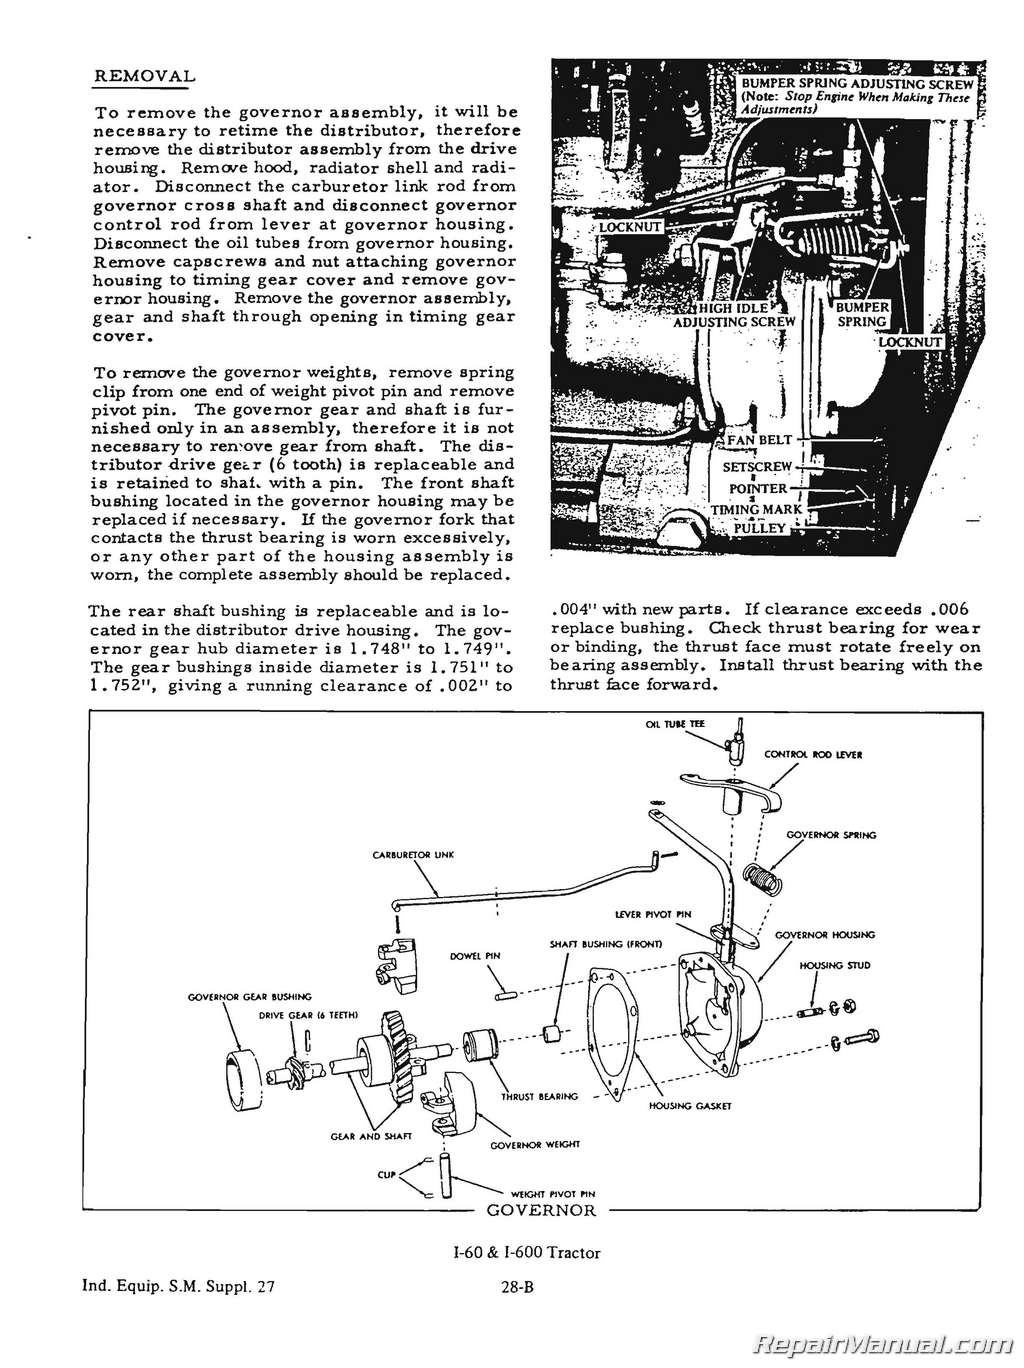 Allis Chalmers B Wiring Diagram from www.repairmanual.com